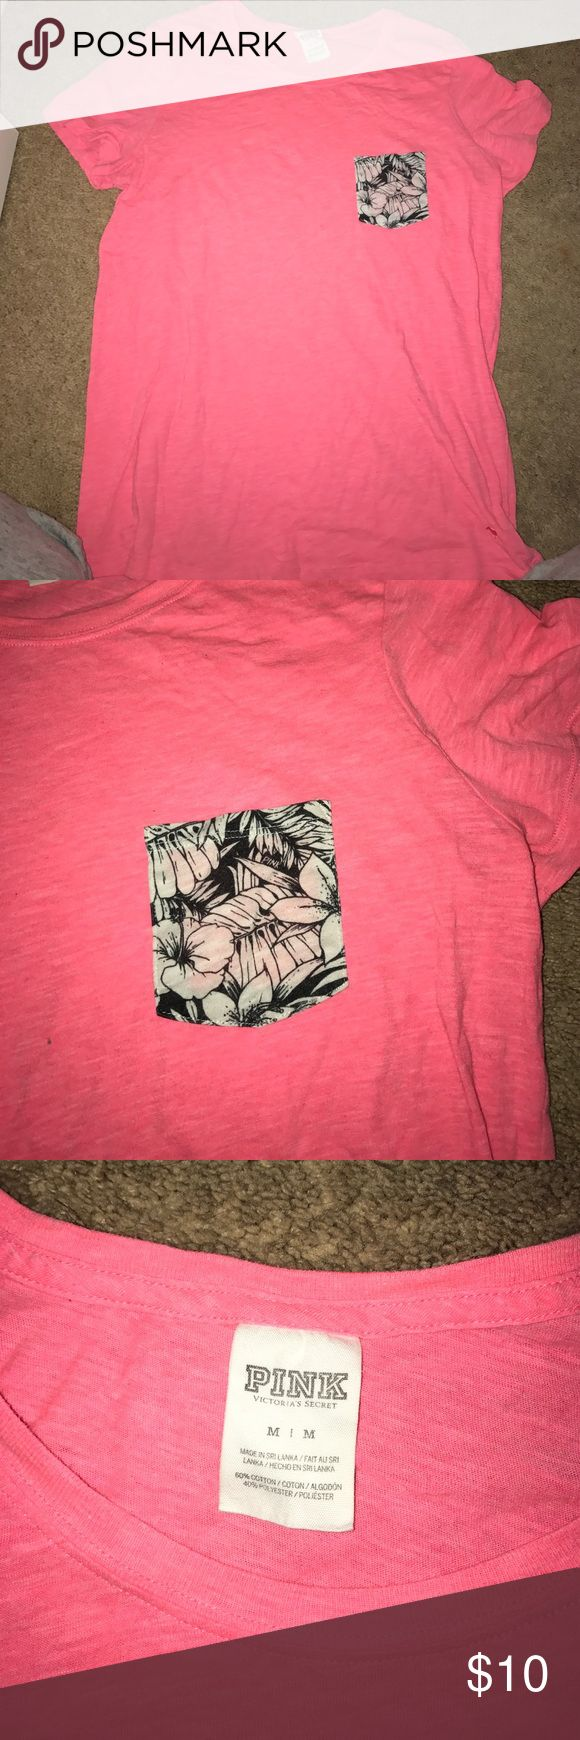 Hot Pink Pocketed T-shirt from Pink Casual tshirt from pink. Has black and white tropical designed pocket on the front. Size M, barely worn. PINK Victoria's Secret Tops Tees - Short Sleeve